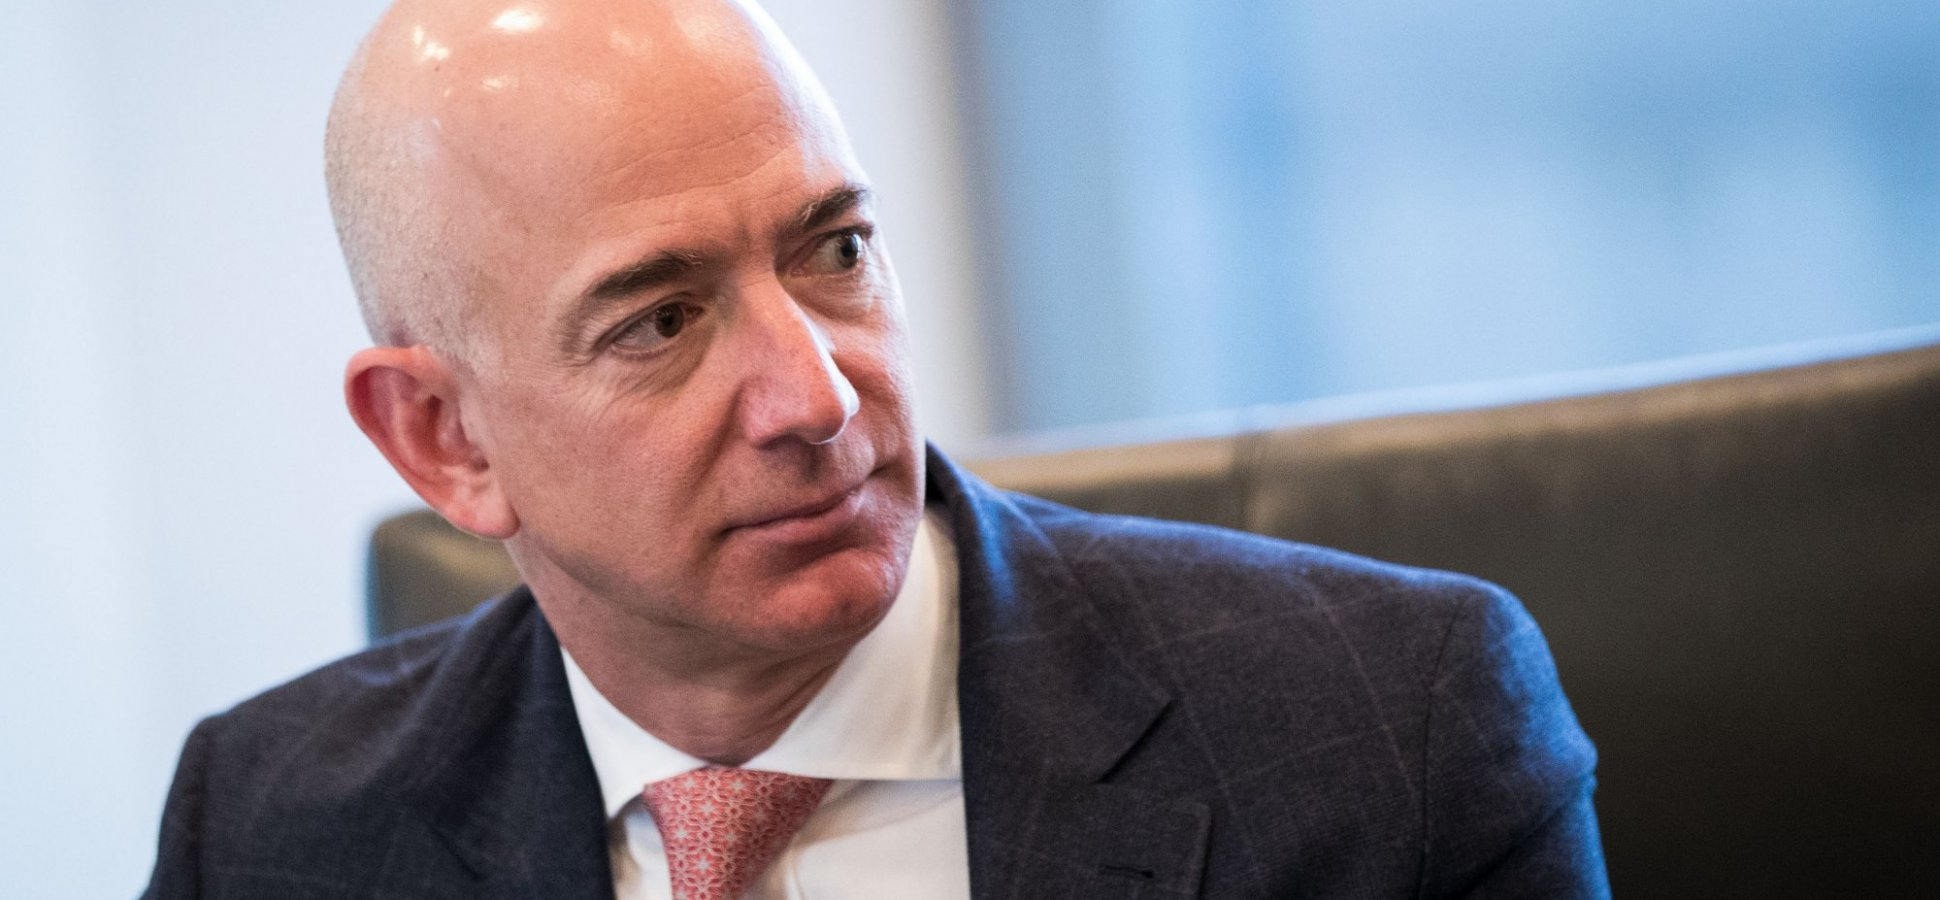 Jeff Bezos Just Shared How to Help Every Team Hit Higher Standards